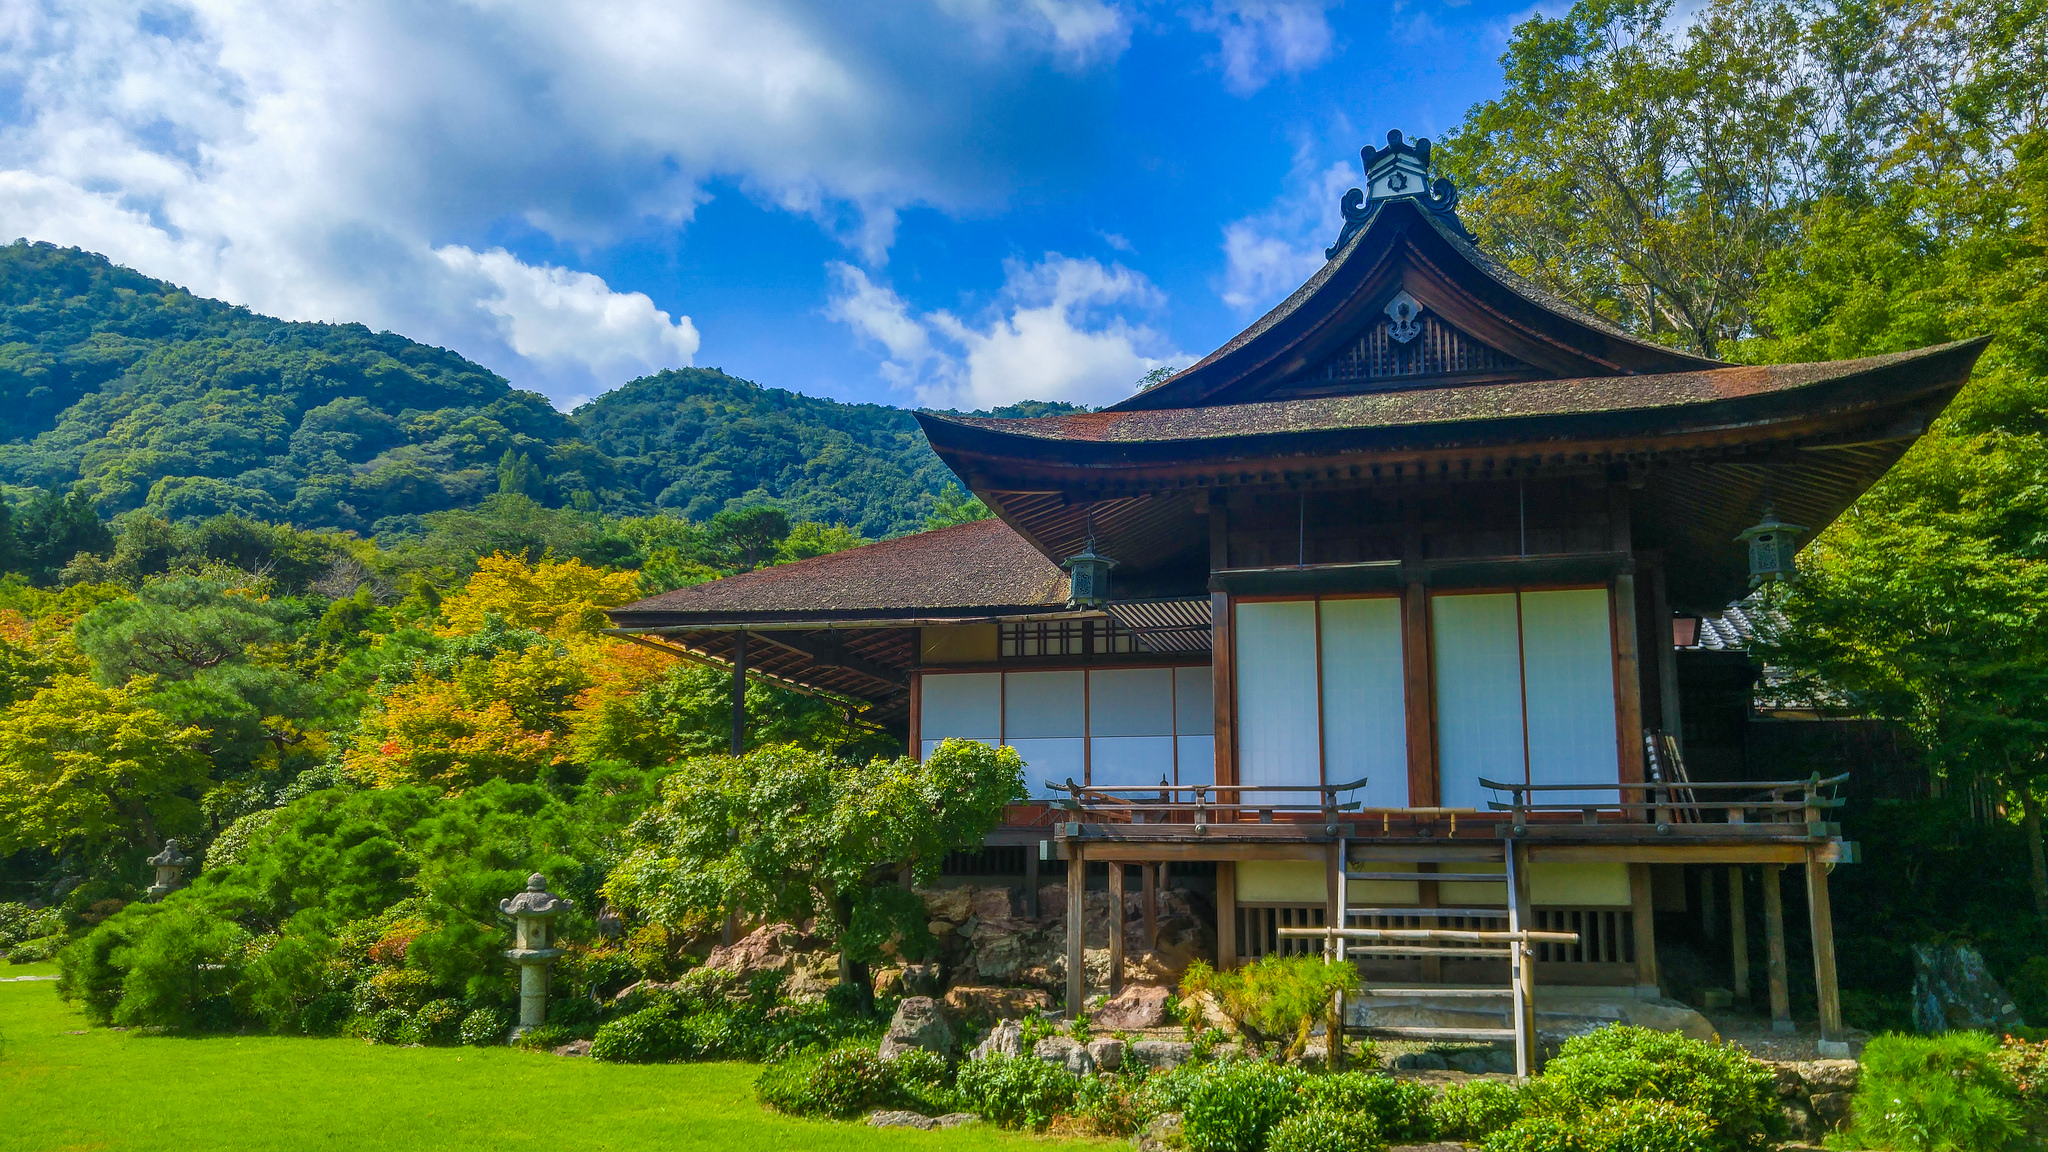 Guide to Visiting Kyoto's Okochi Sanso, Arashiyama's Stunning Traditional Japanese Villa and Zen Garden